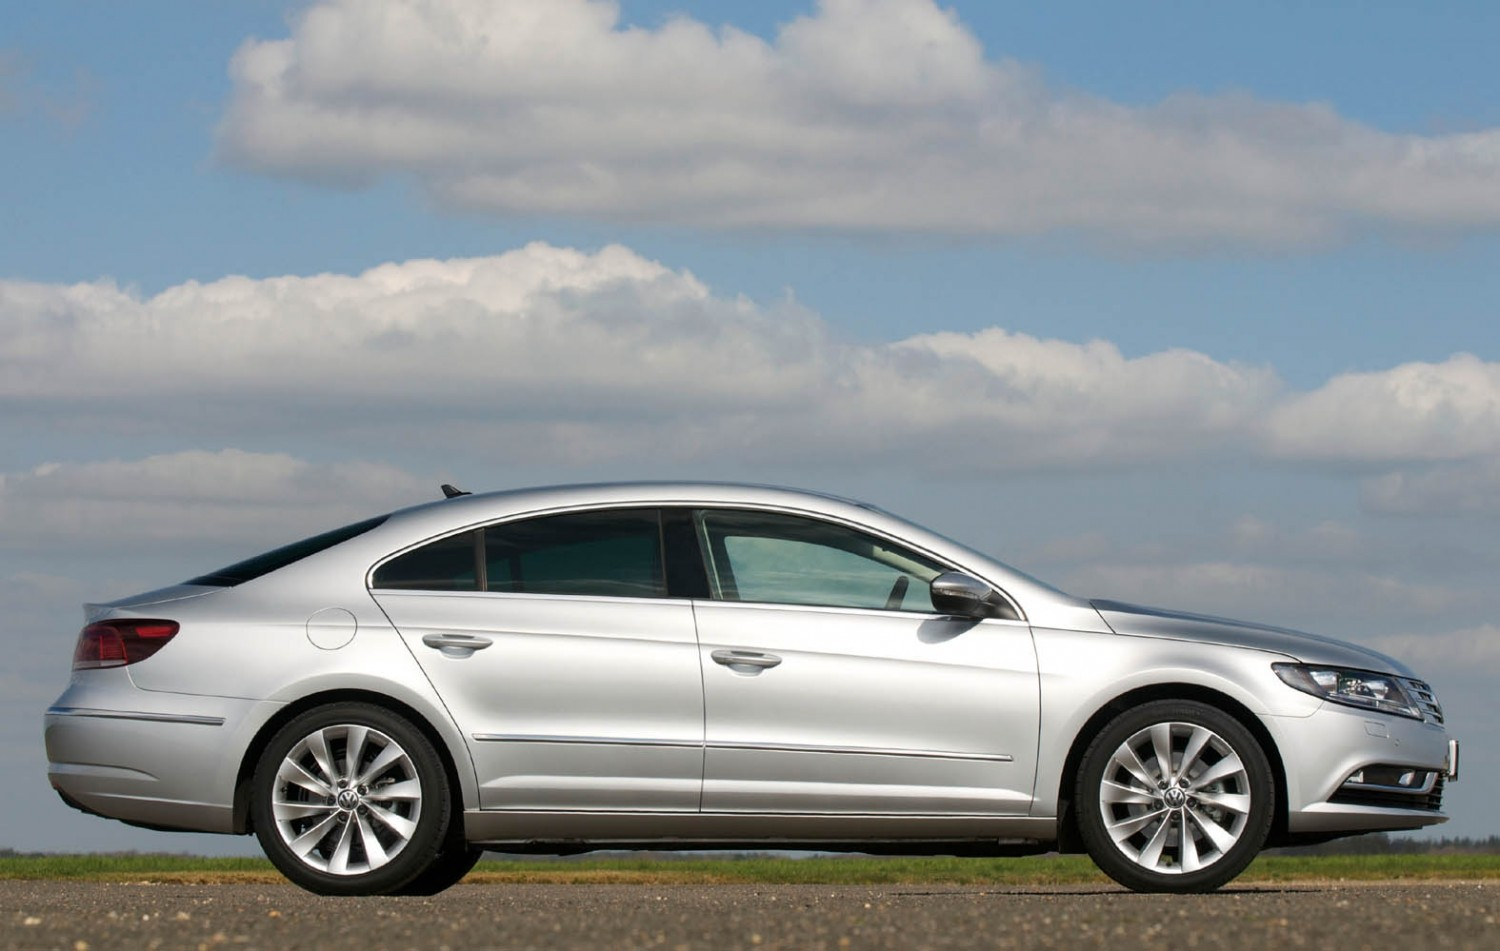 volkswagen cc gt used car review eurekar. Black Bedroom Furniture Sets. Home Design Ideas